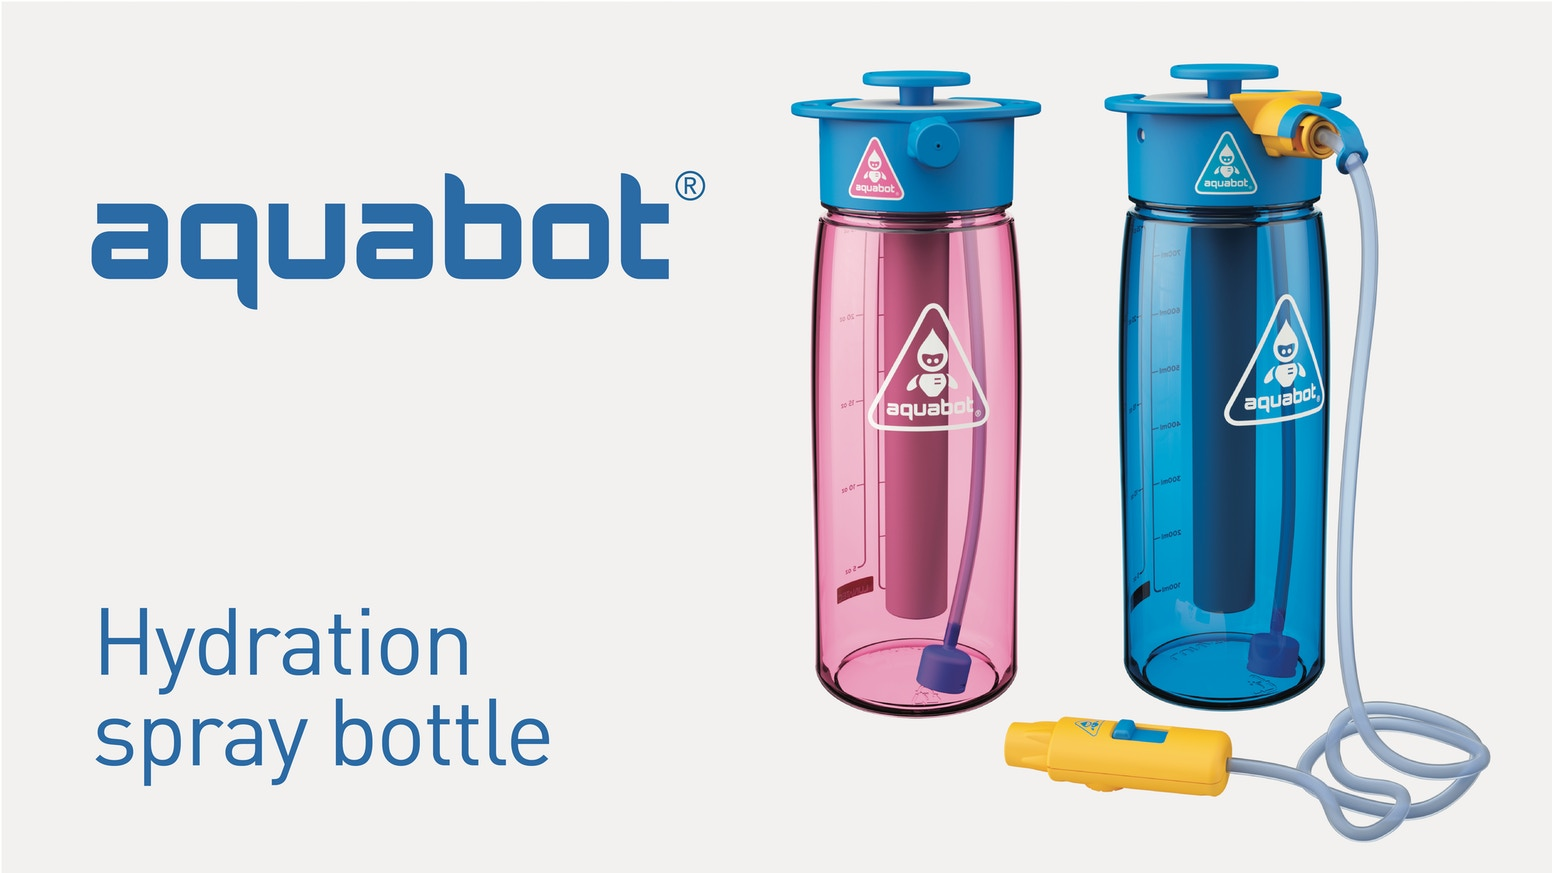 ff3b1beb3d Aquabot: Super Hydration Spray Water Bottle System. Hydrate, squirt your  friends, mist your dog, take a shower, clean gear